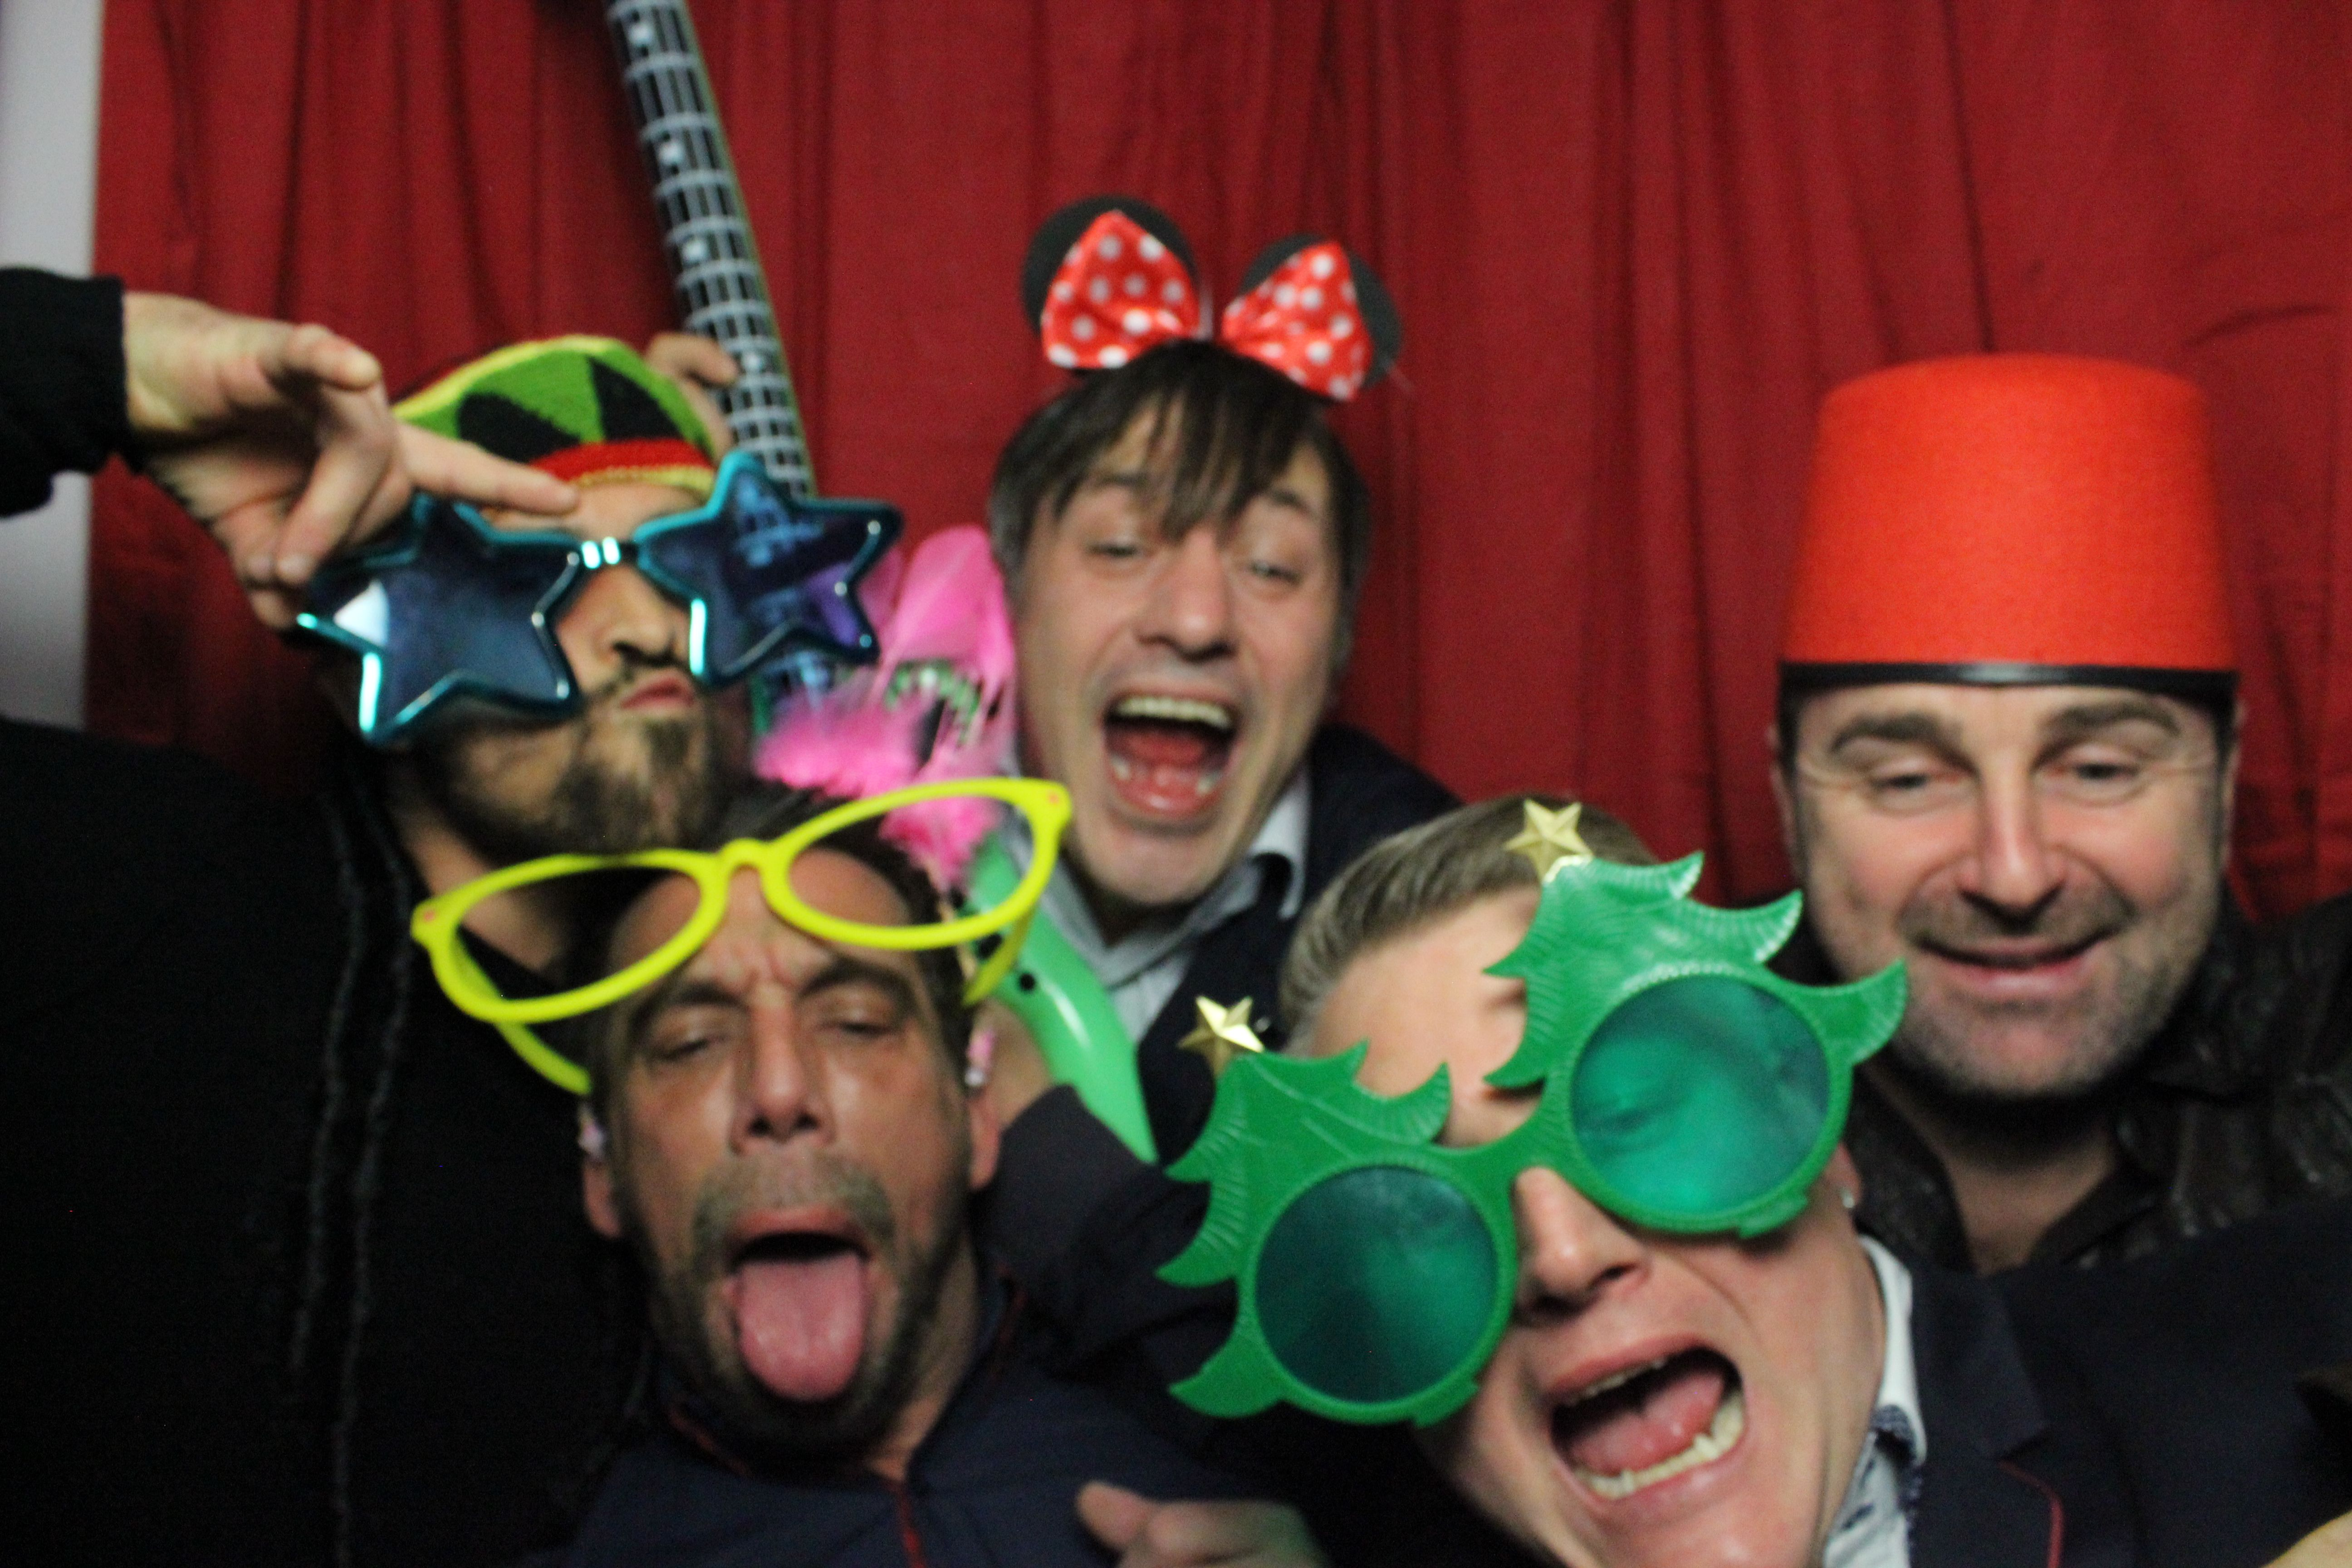 Photo booth fun pictures to preserve the memories from the night before just incase you forget!